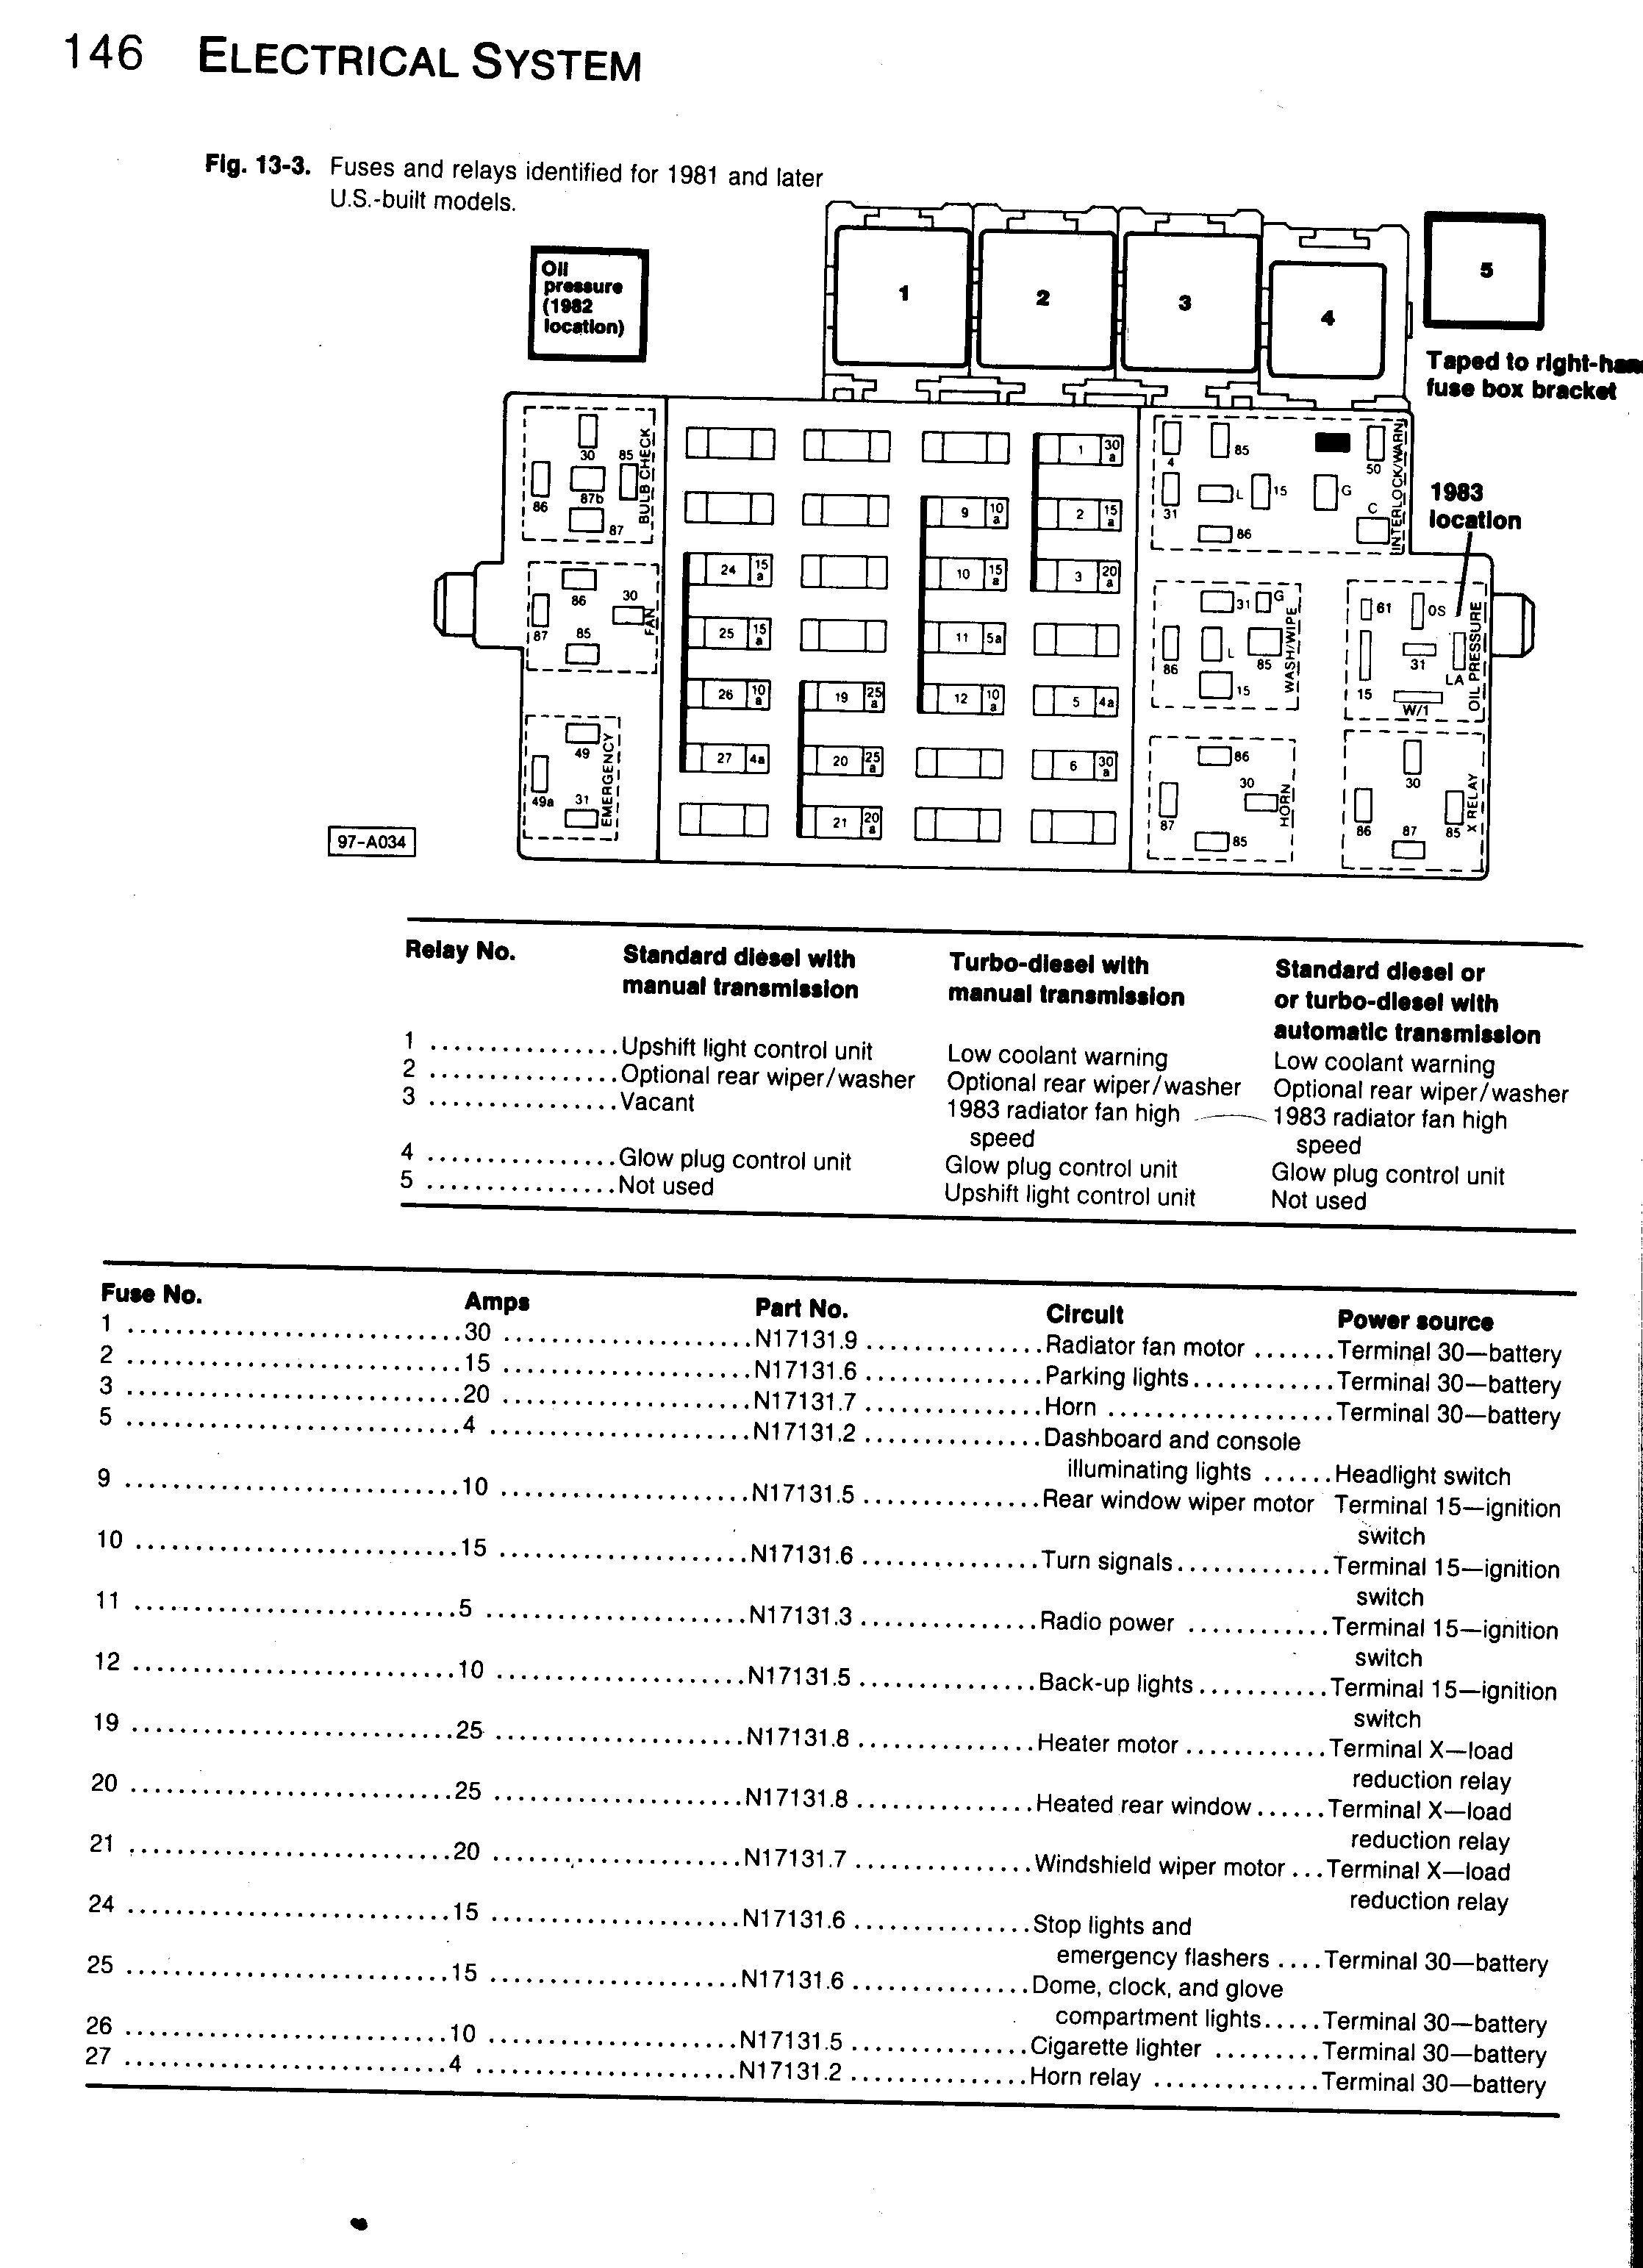 Vw Rabbit Fuse Diagram Worksheet And Wiring Toyota Emina Box 84 Online Schematics Rh Delvato Co 2007 07